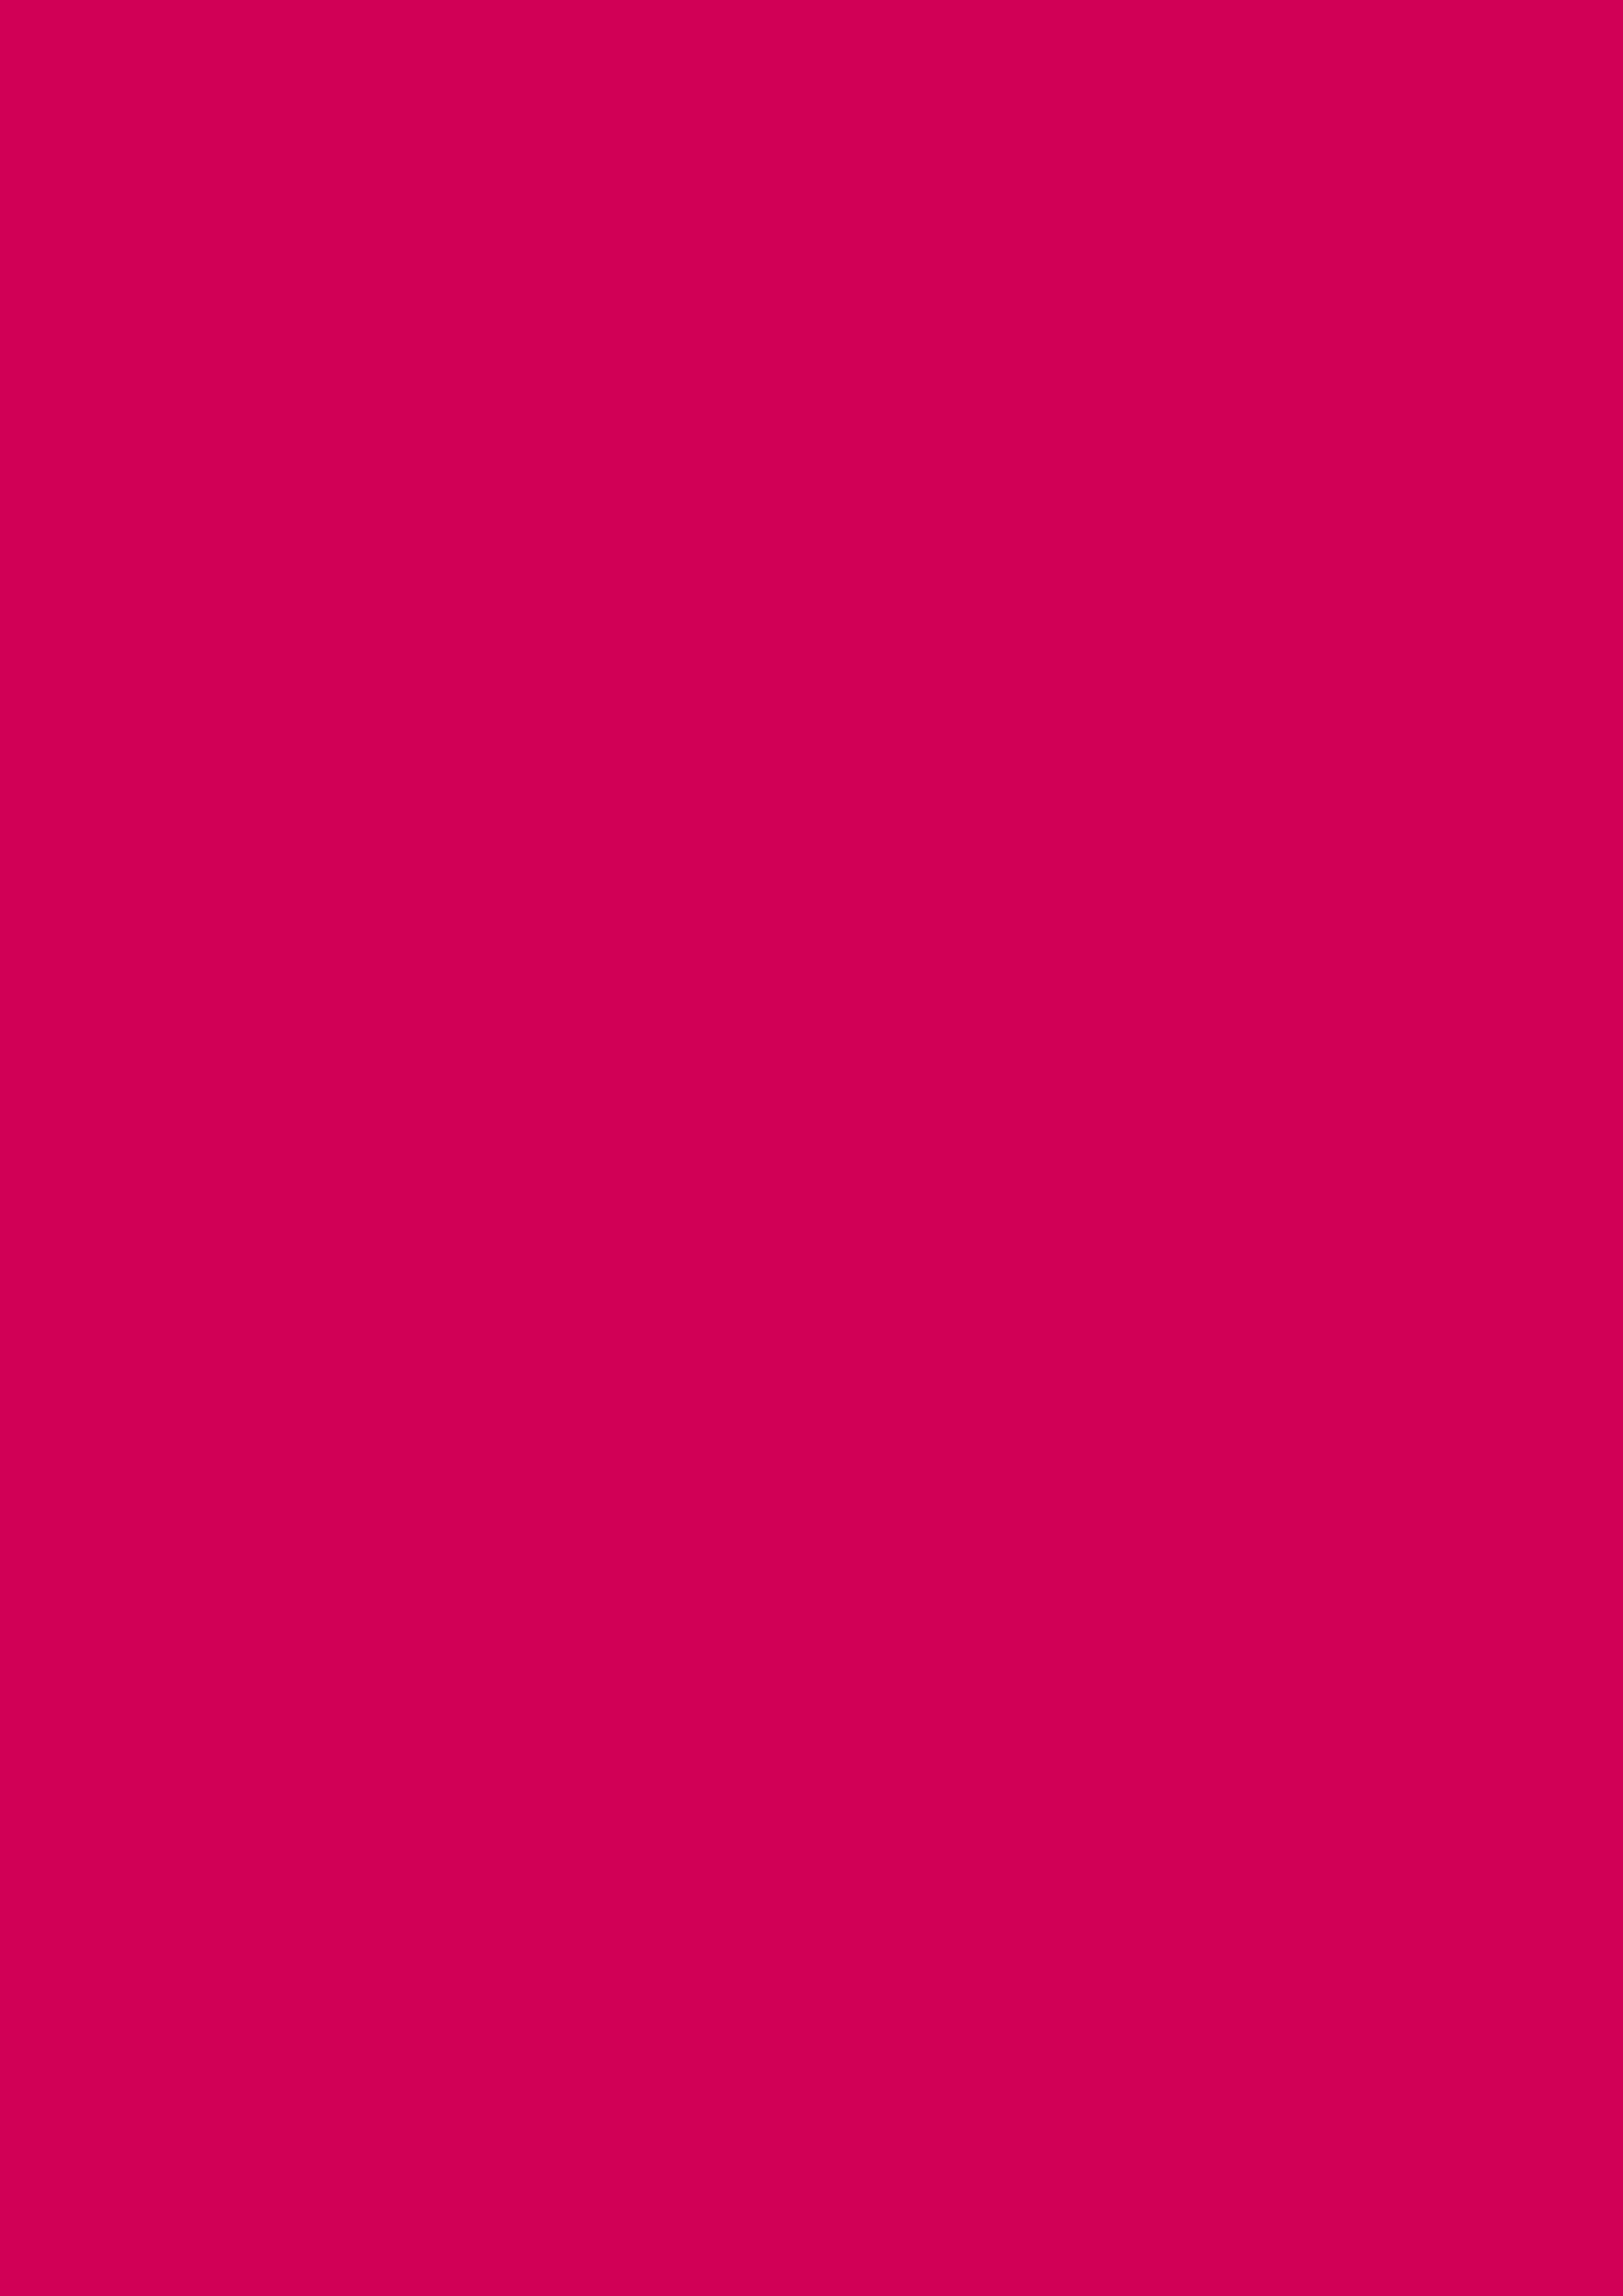 2480x3508 Rubine Red Solid Color Background